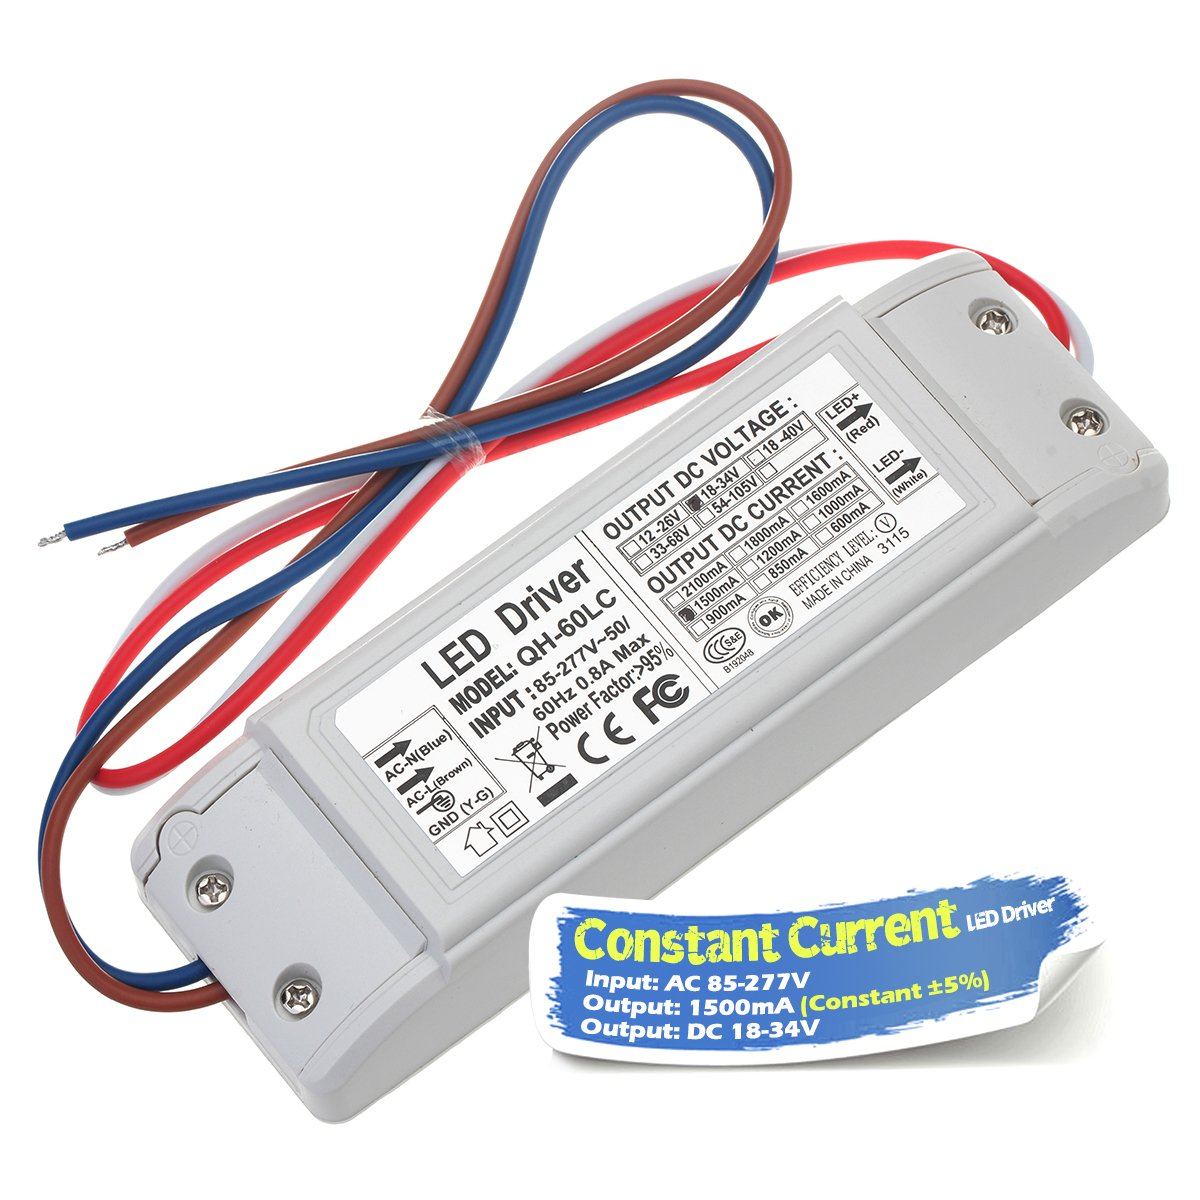 21V-34V x10 70W 80W 90W 100W IP67 Waterproof High Power Supply 3000 mA Lighting Transformer for 100 W COB Chips Constant Current Output In85-277V AC-DC 7-10 Chanzon LED Driver 3000mA Aluminium